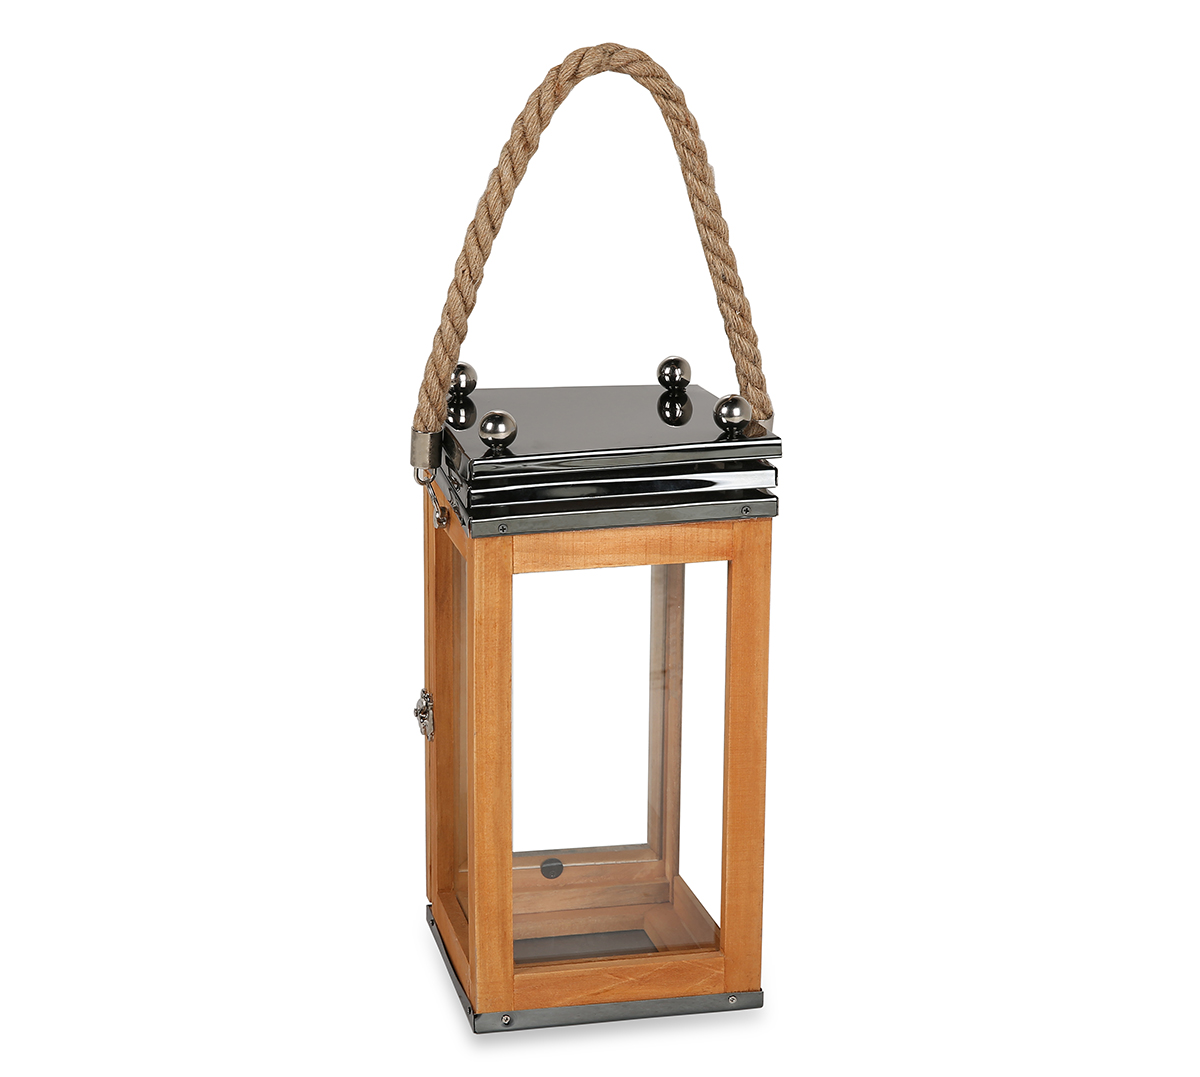 LS Wooden Lantern With Rope Small